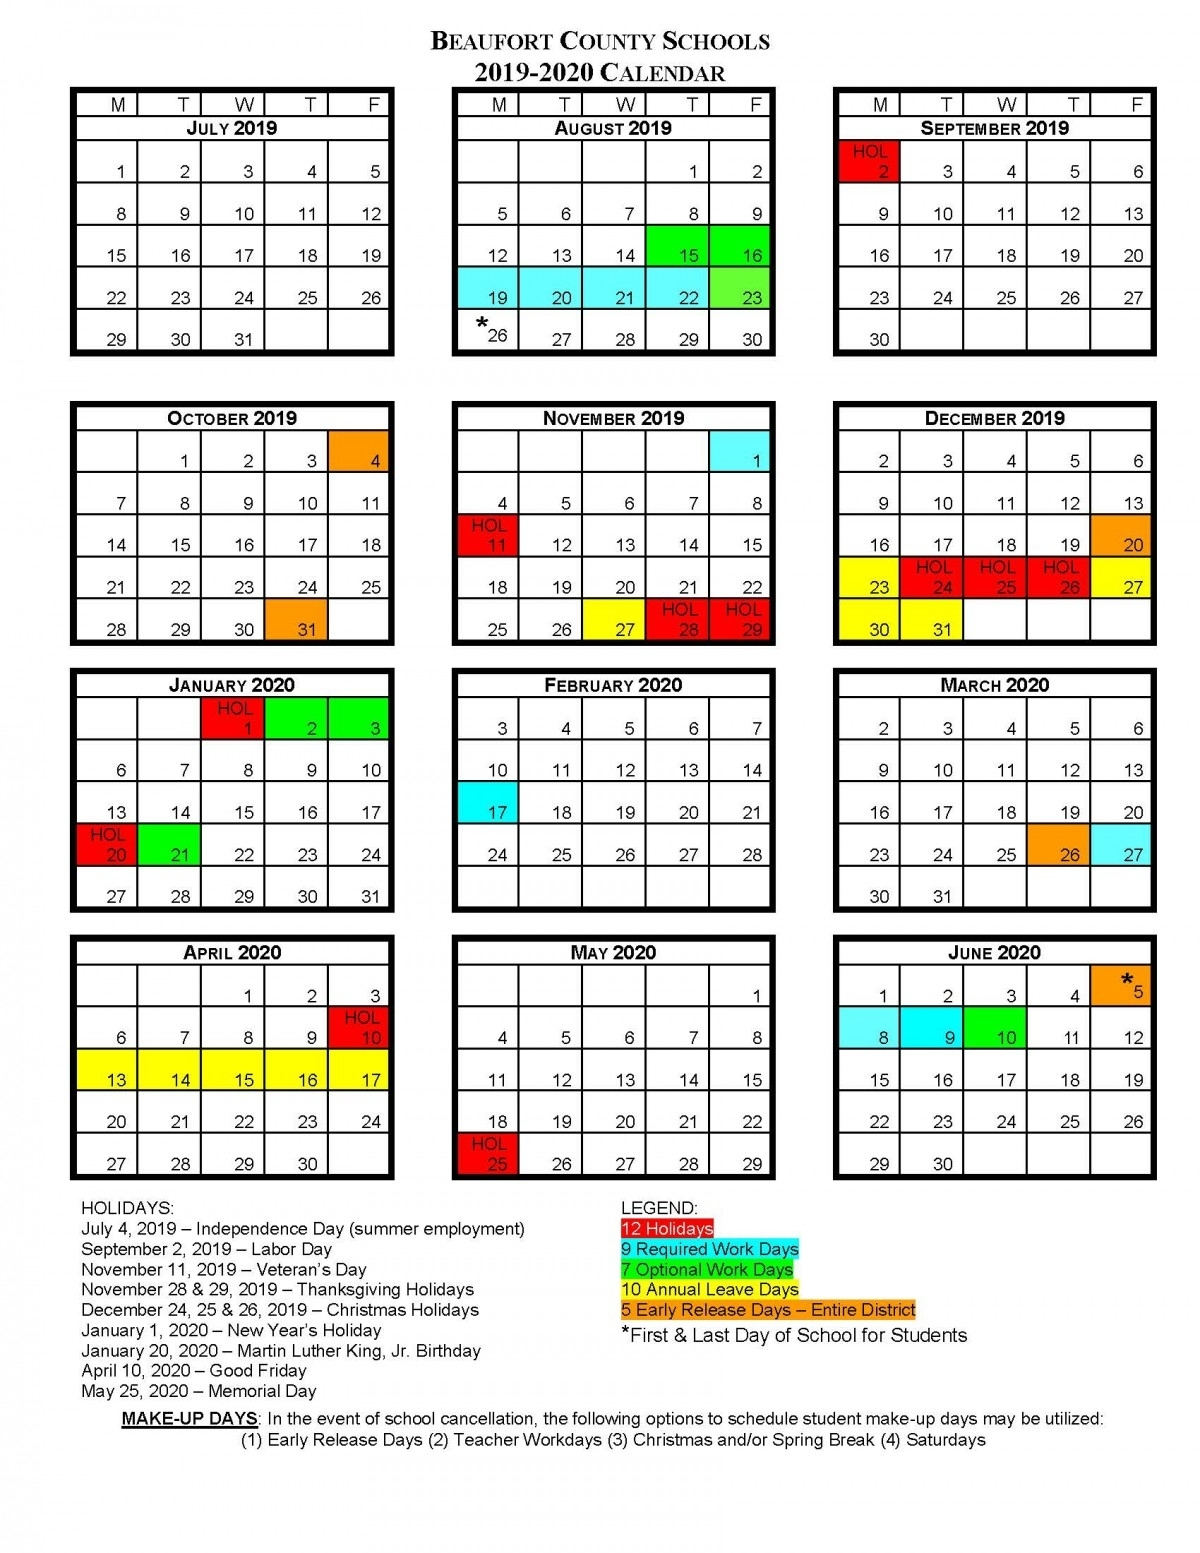 Bcs School Calendar | Beaufort County Schools with Virginia Tech Calendar 2019-2020